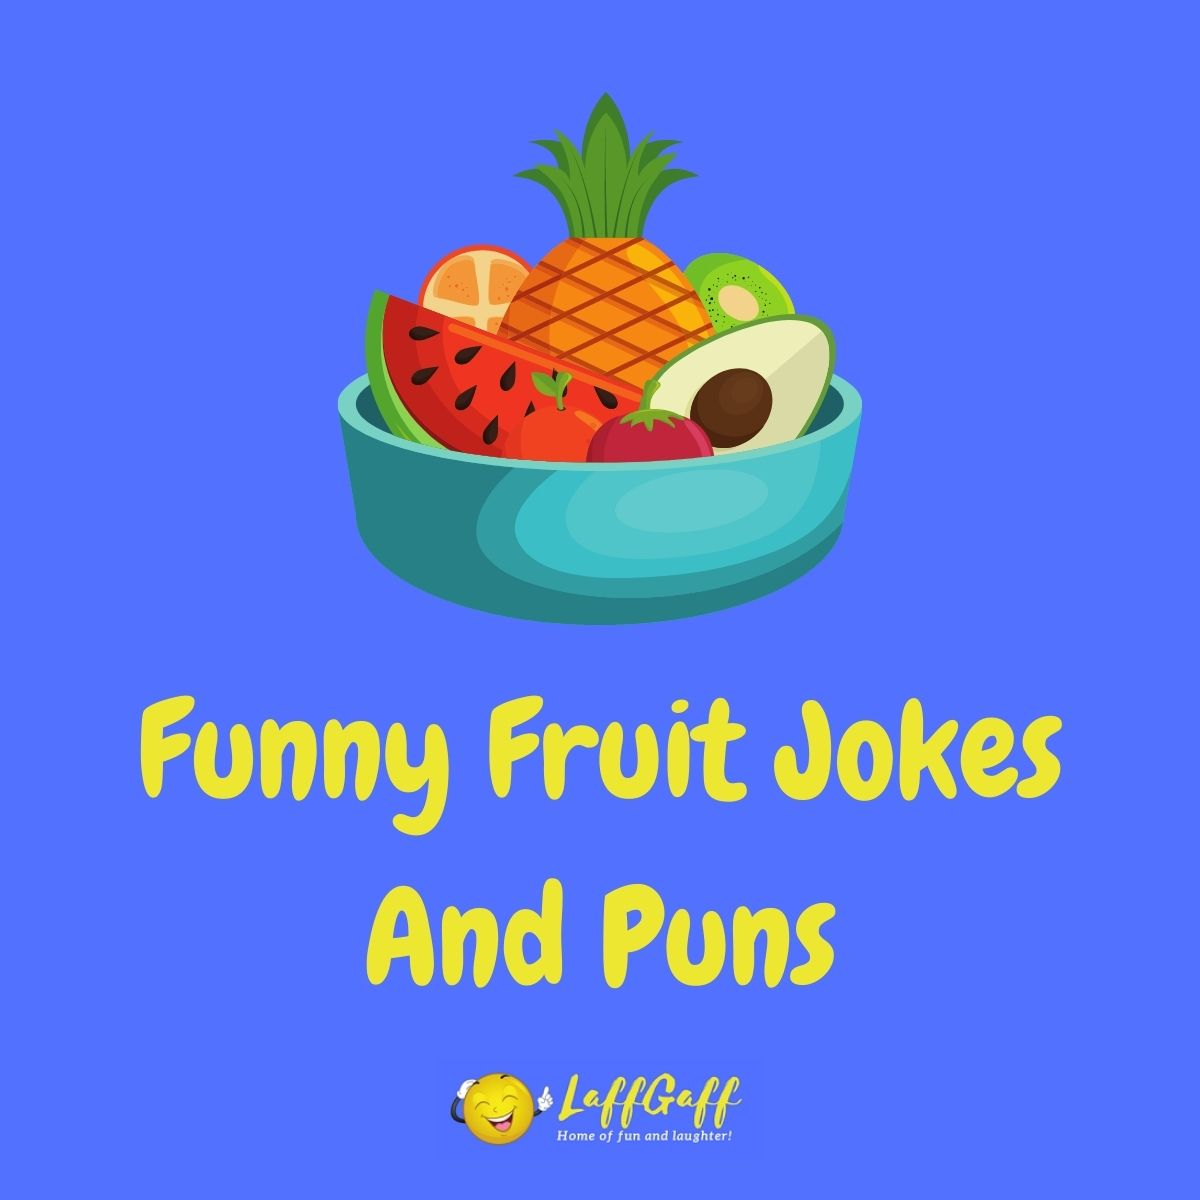 Featured image for a page of funny fruit jokes and puns.